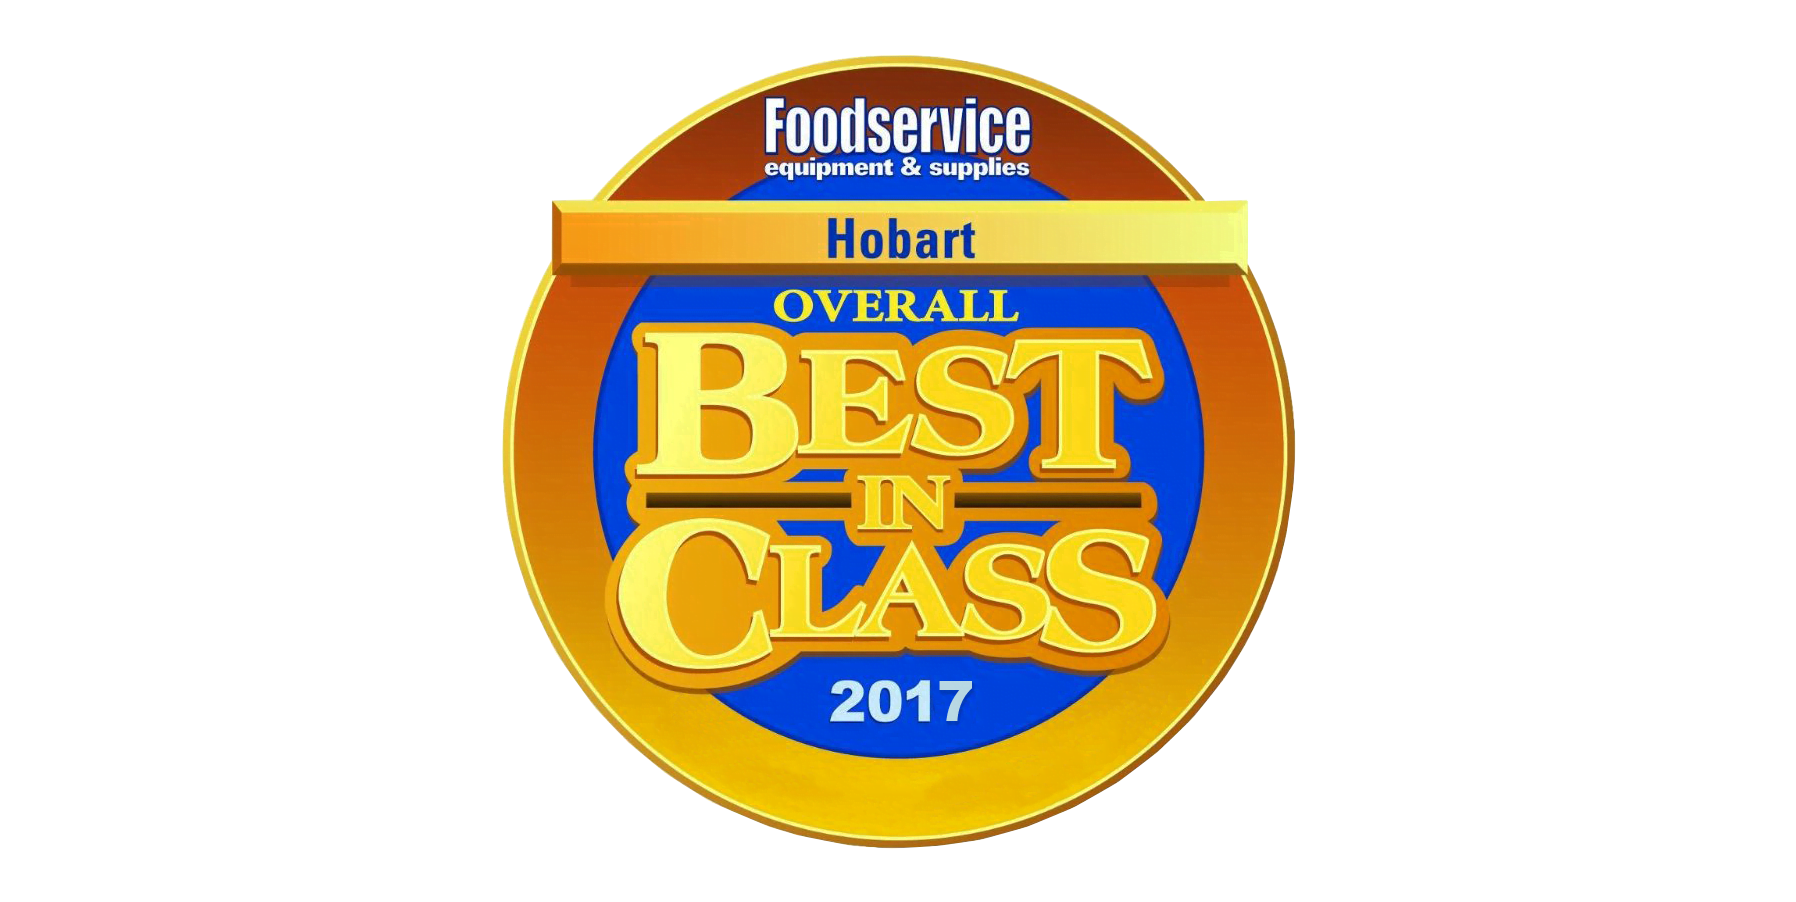 OCTOBER 3, 2017 / ITW Food Equipment Group Recognized Best in Class